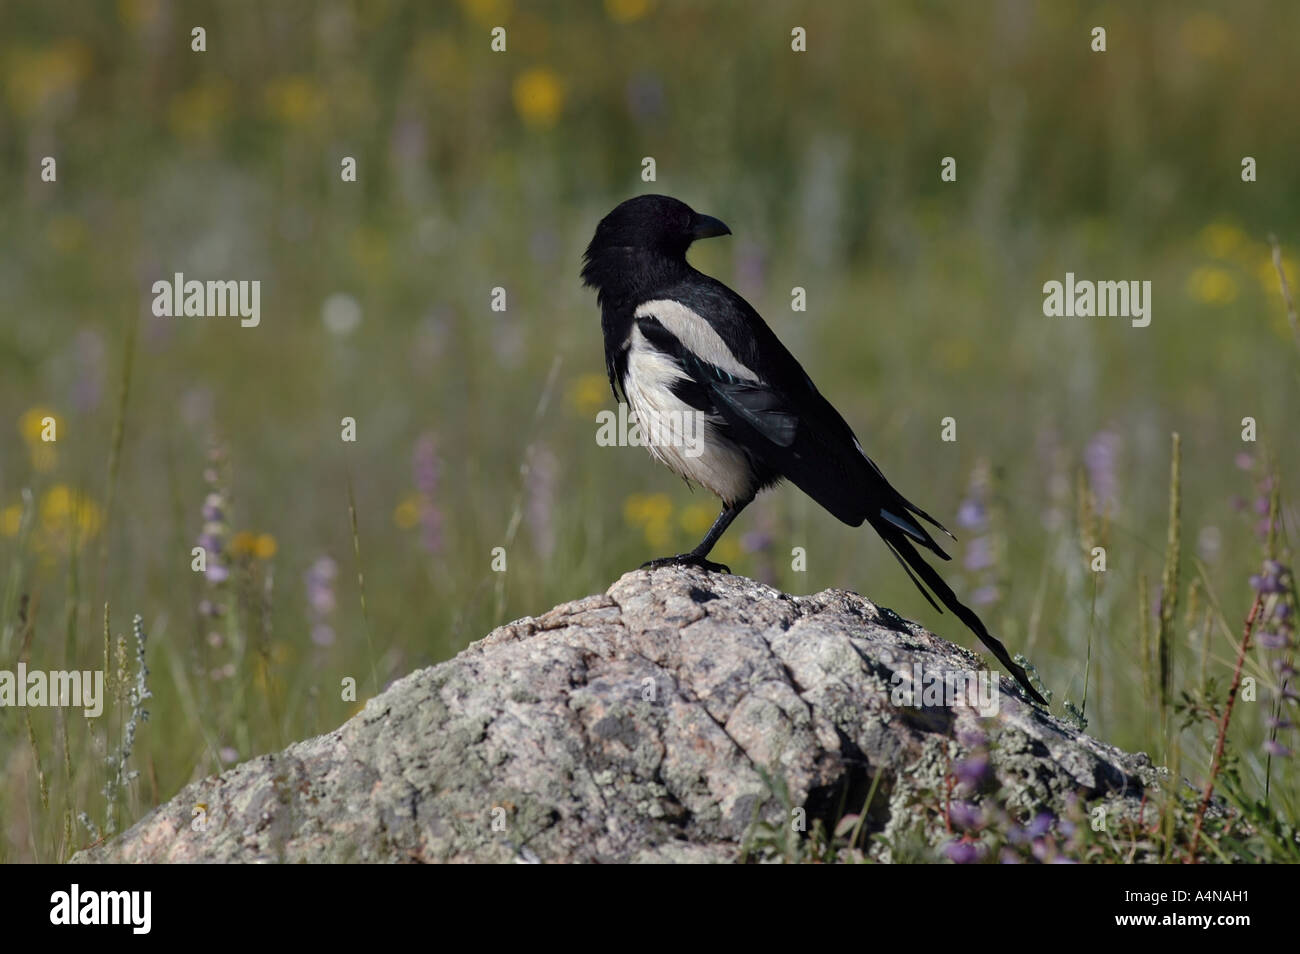 black billed magpie rocky mountain national park colorado songbird song bird colorful field medow flowers flower rock - Stock Image